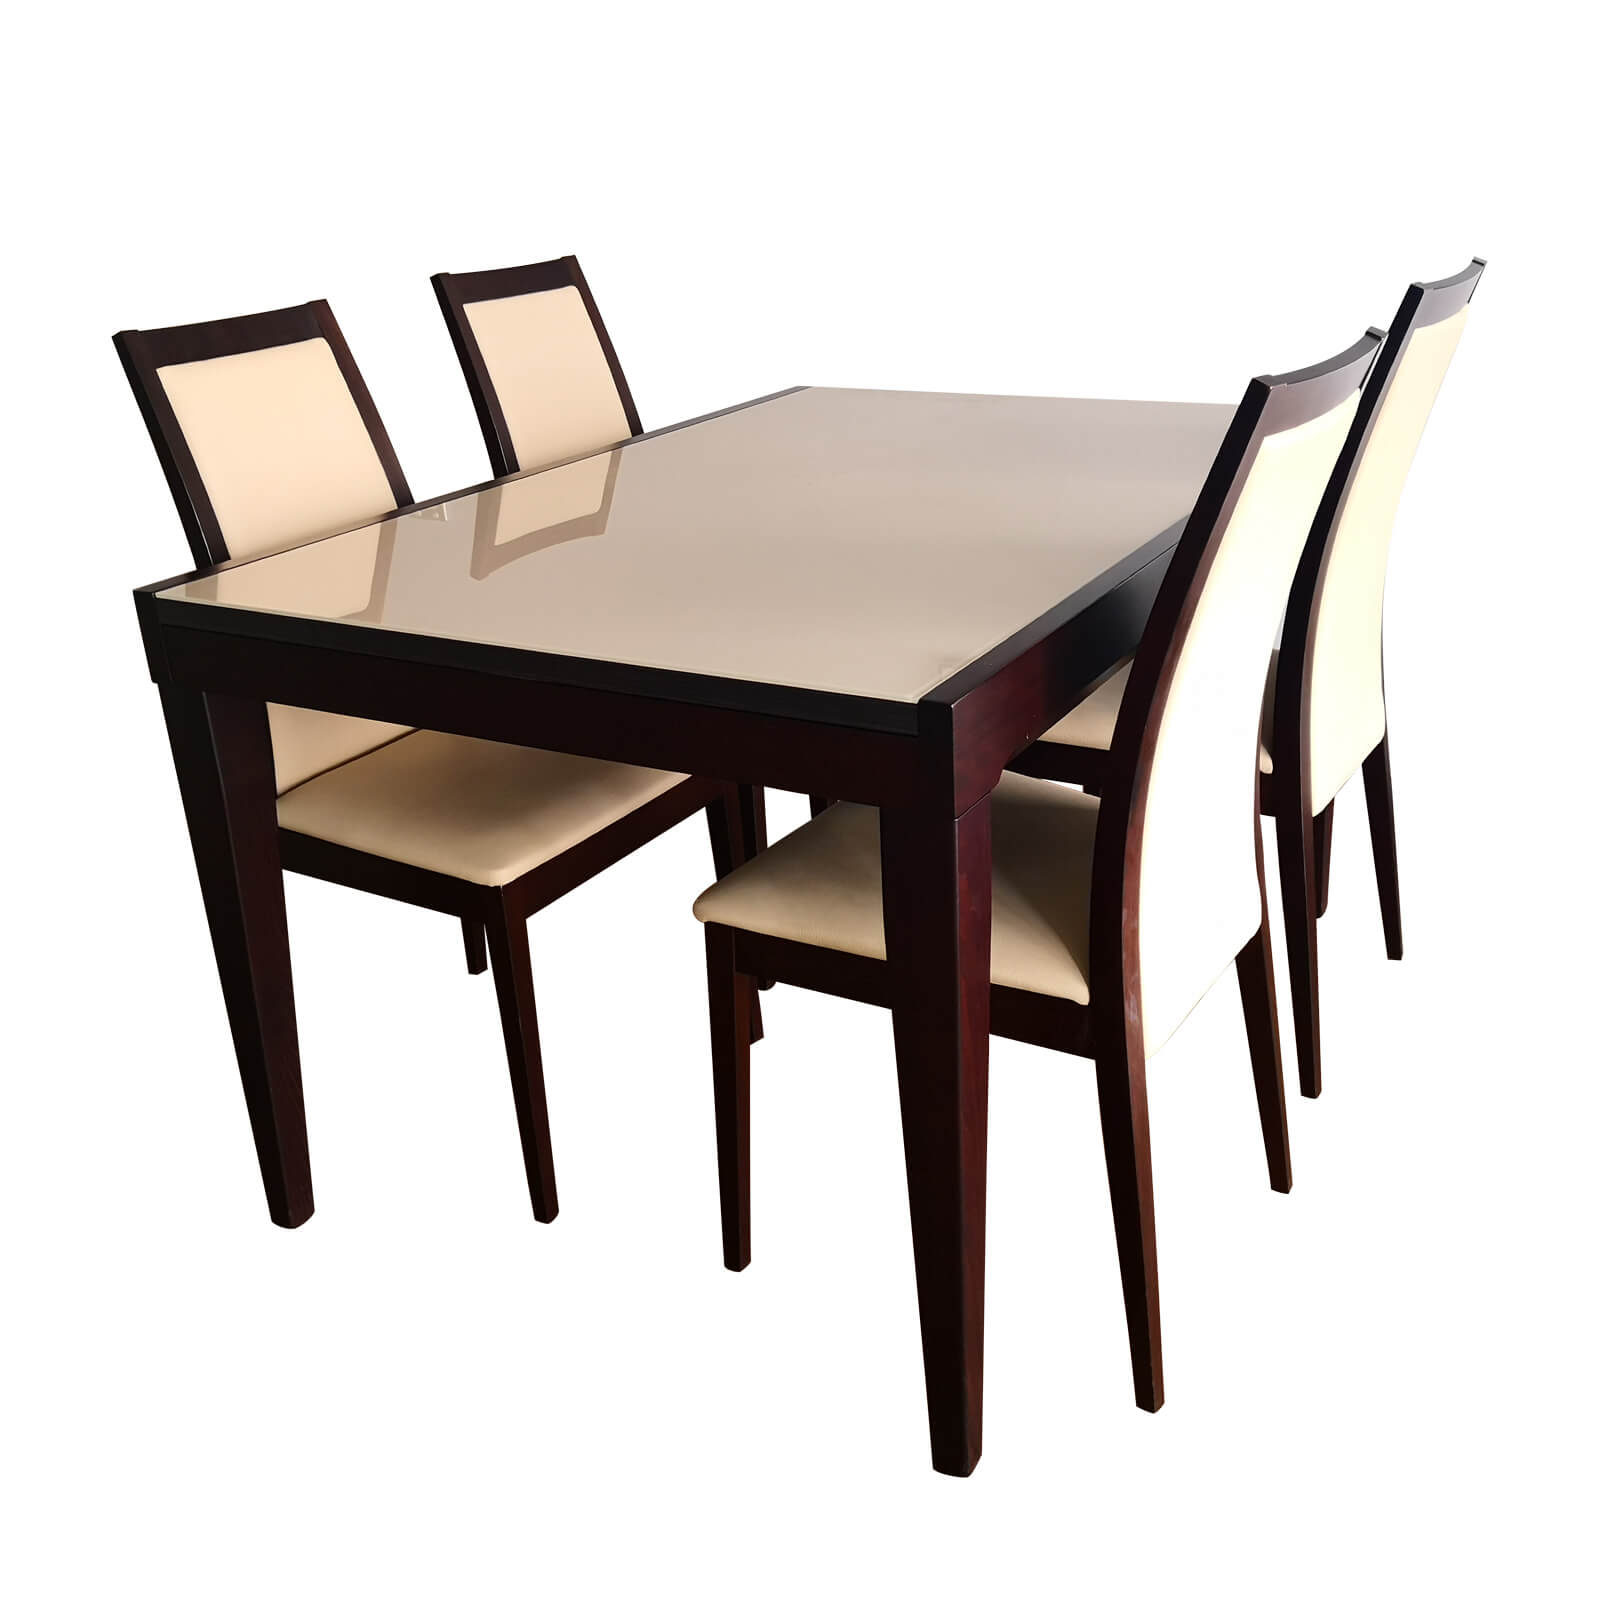 Two Design Lovers Italian 5 piece dining set